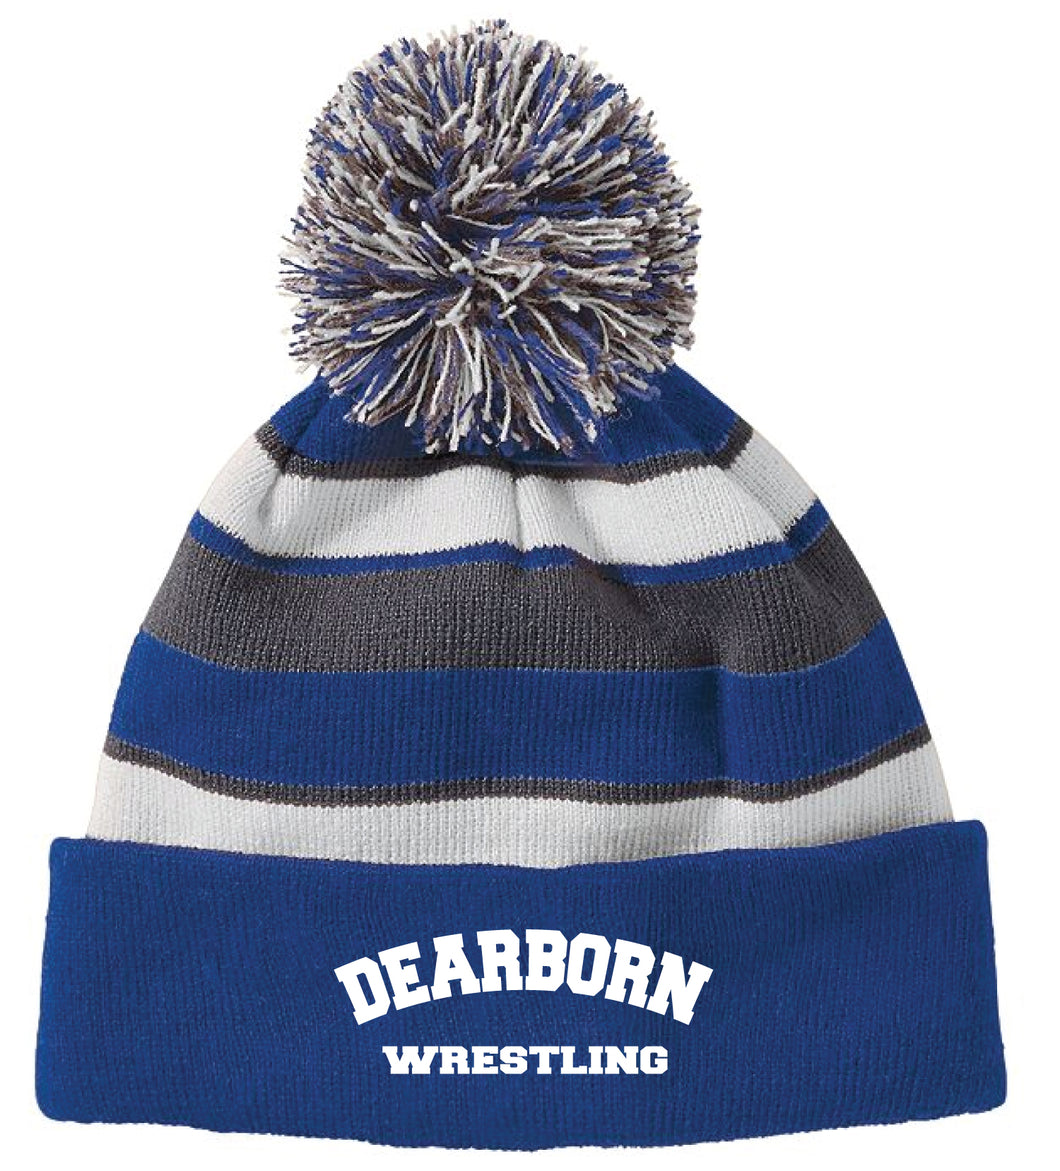 Dearborn Youth Wrestling Pom Beanie